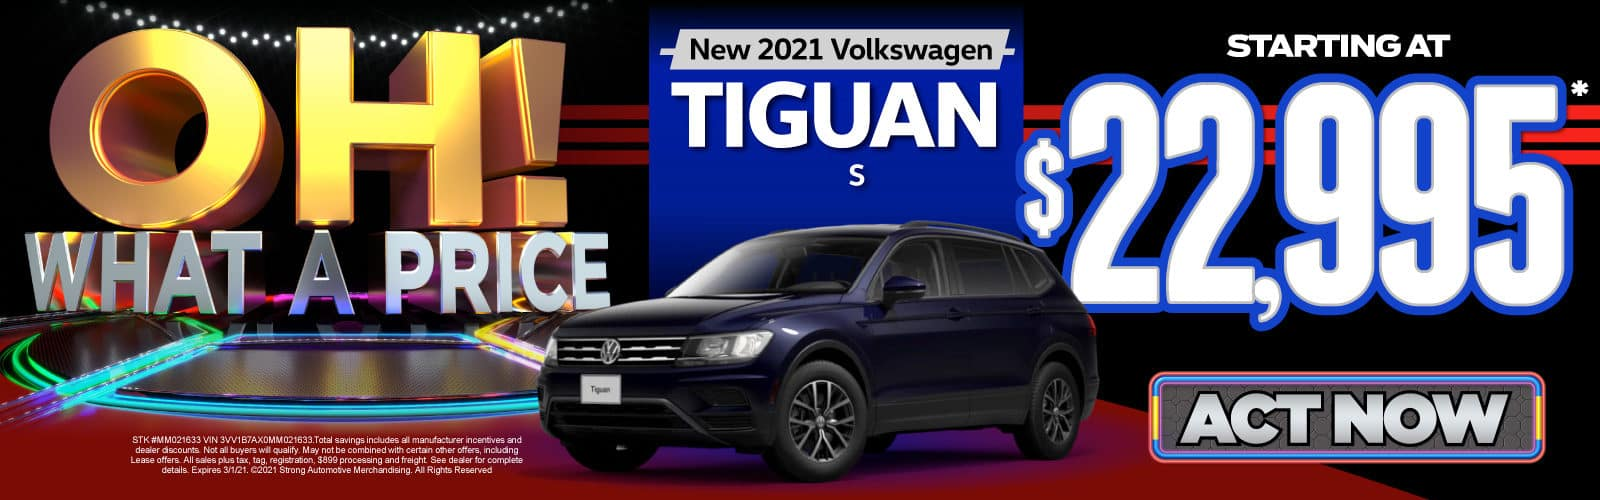 New 2021 VW Tiguan - Starting at $22,995 - Act Now